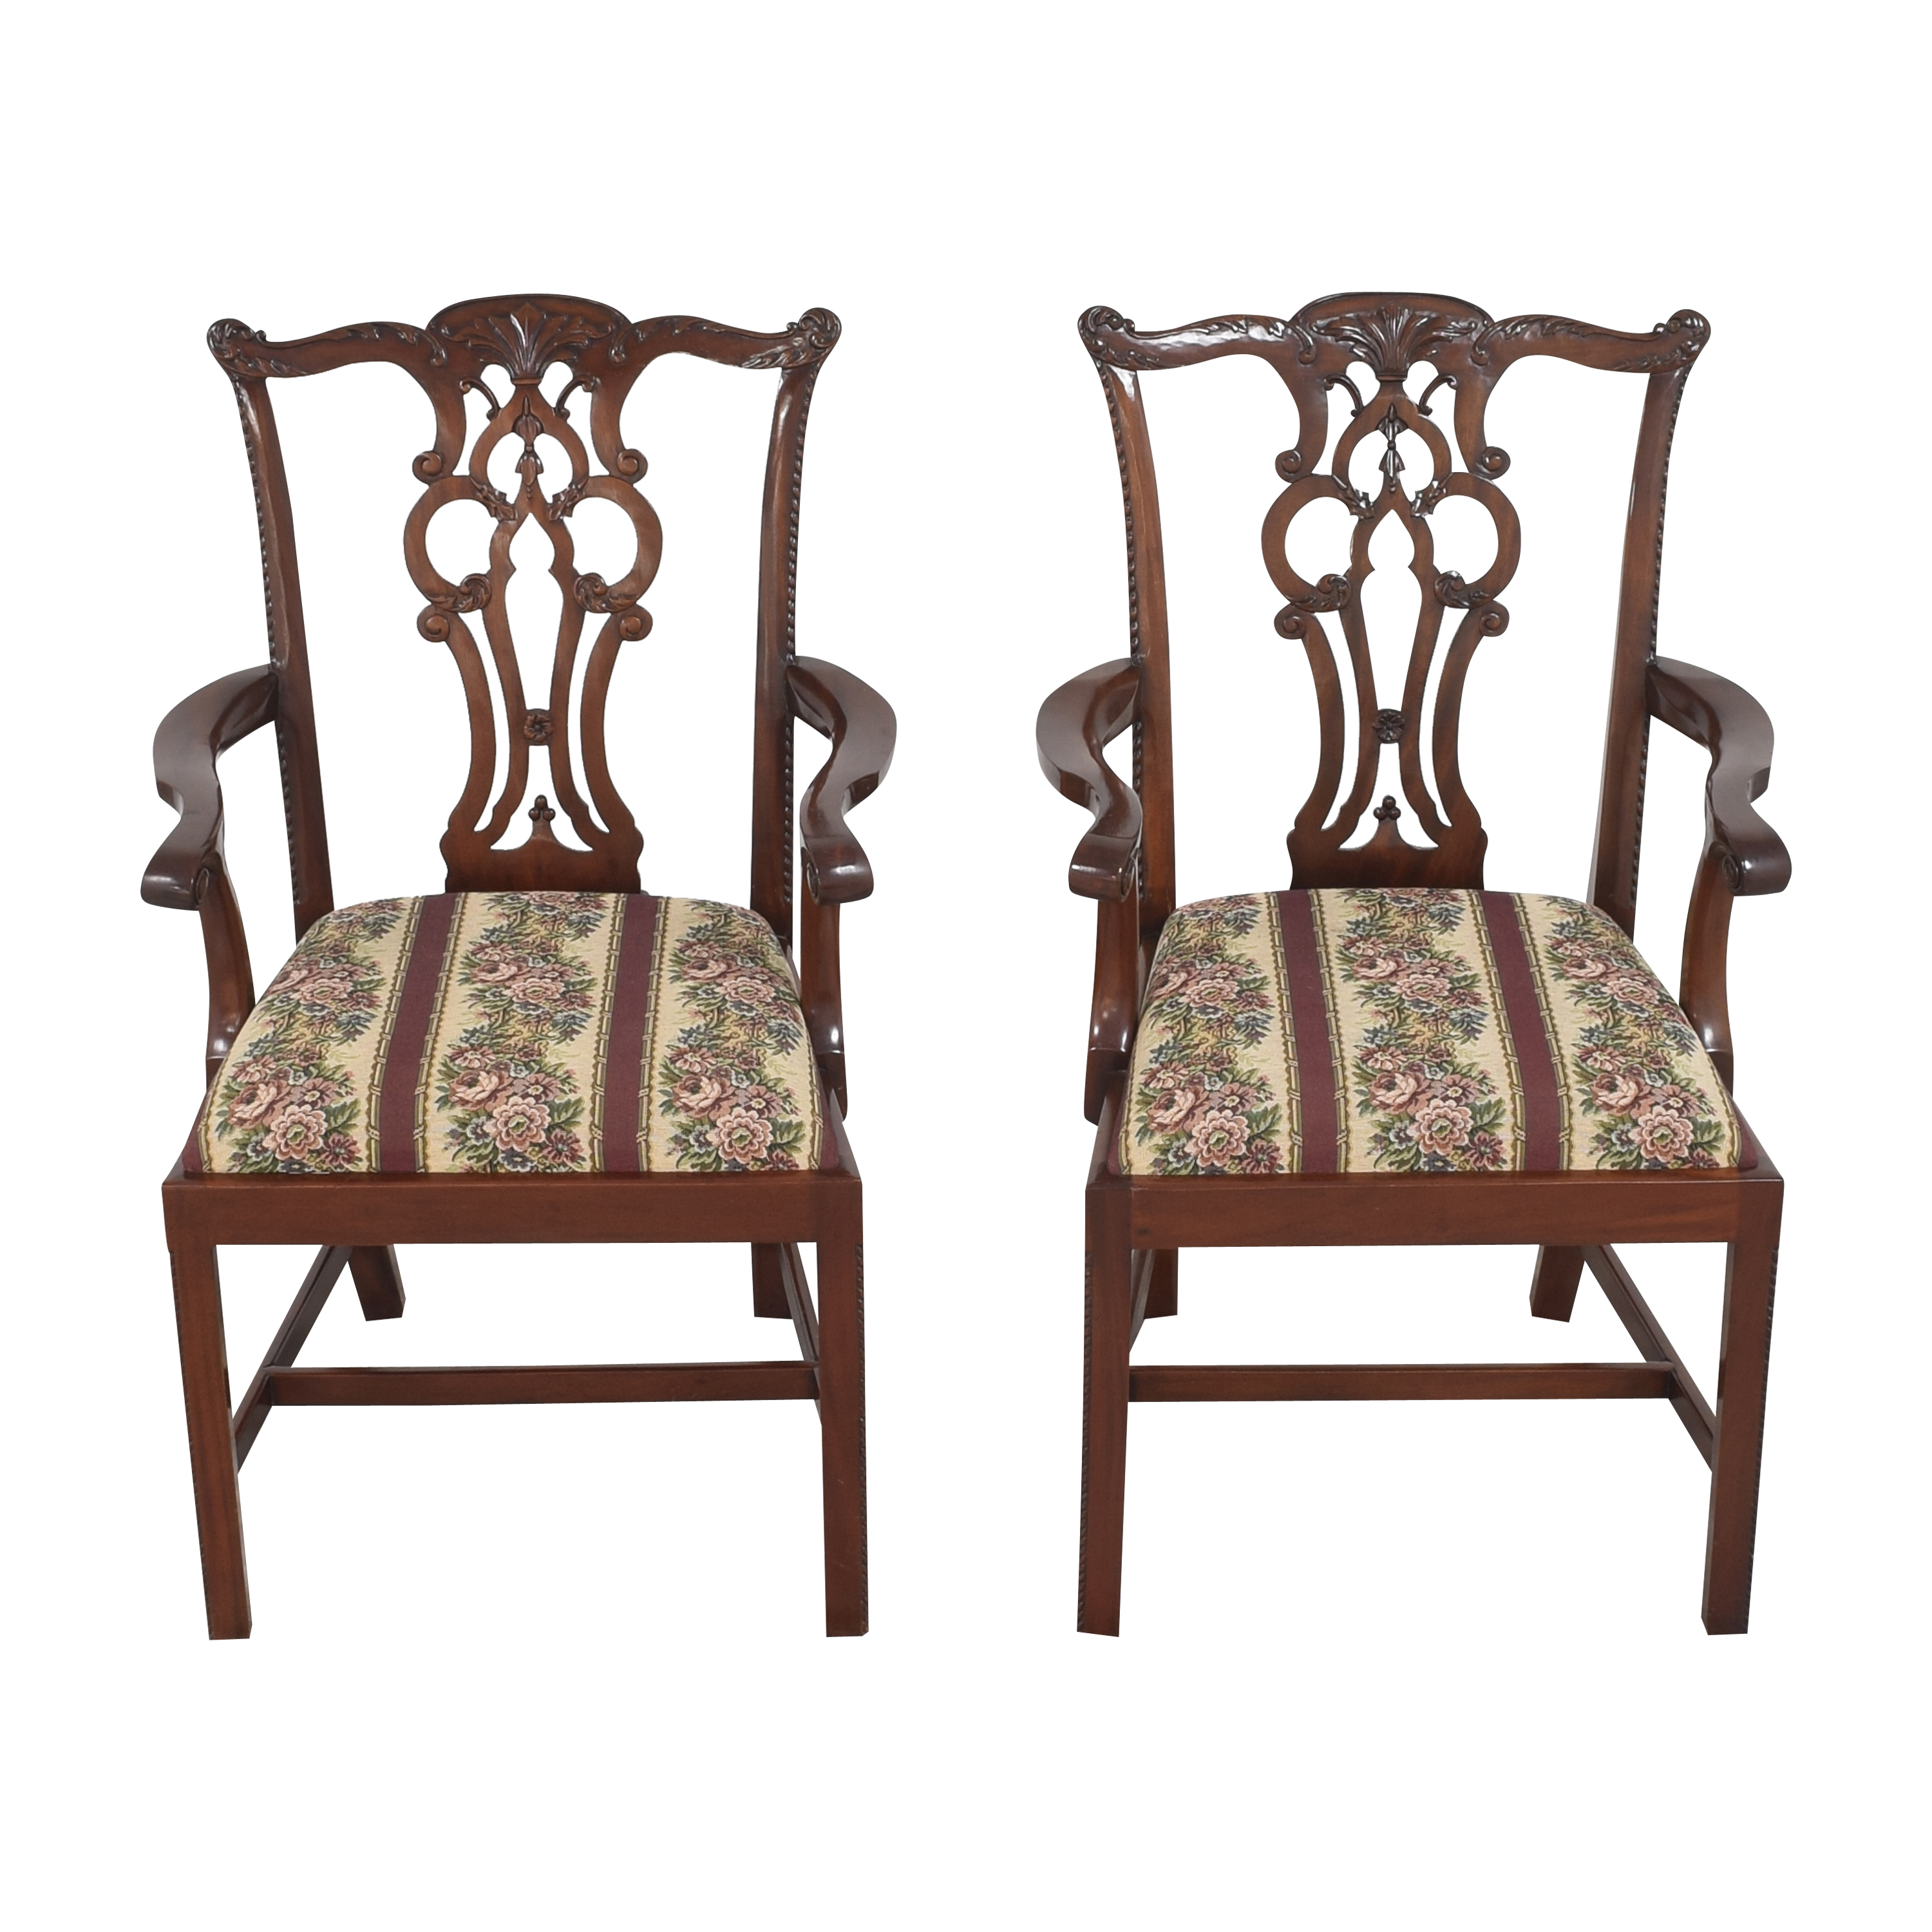 Maitland-Smith Maitland-Smith Chippendale Upholstered Dining Arm Chairs on sale